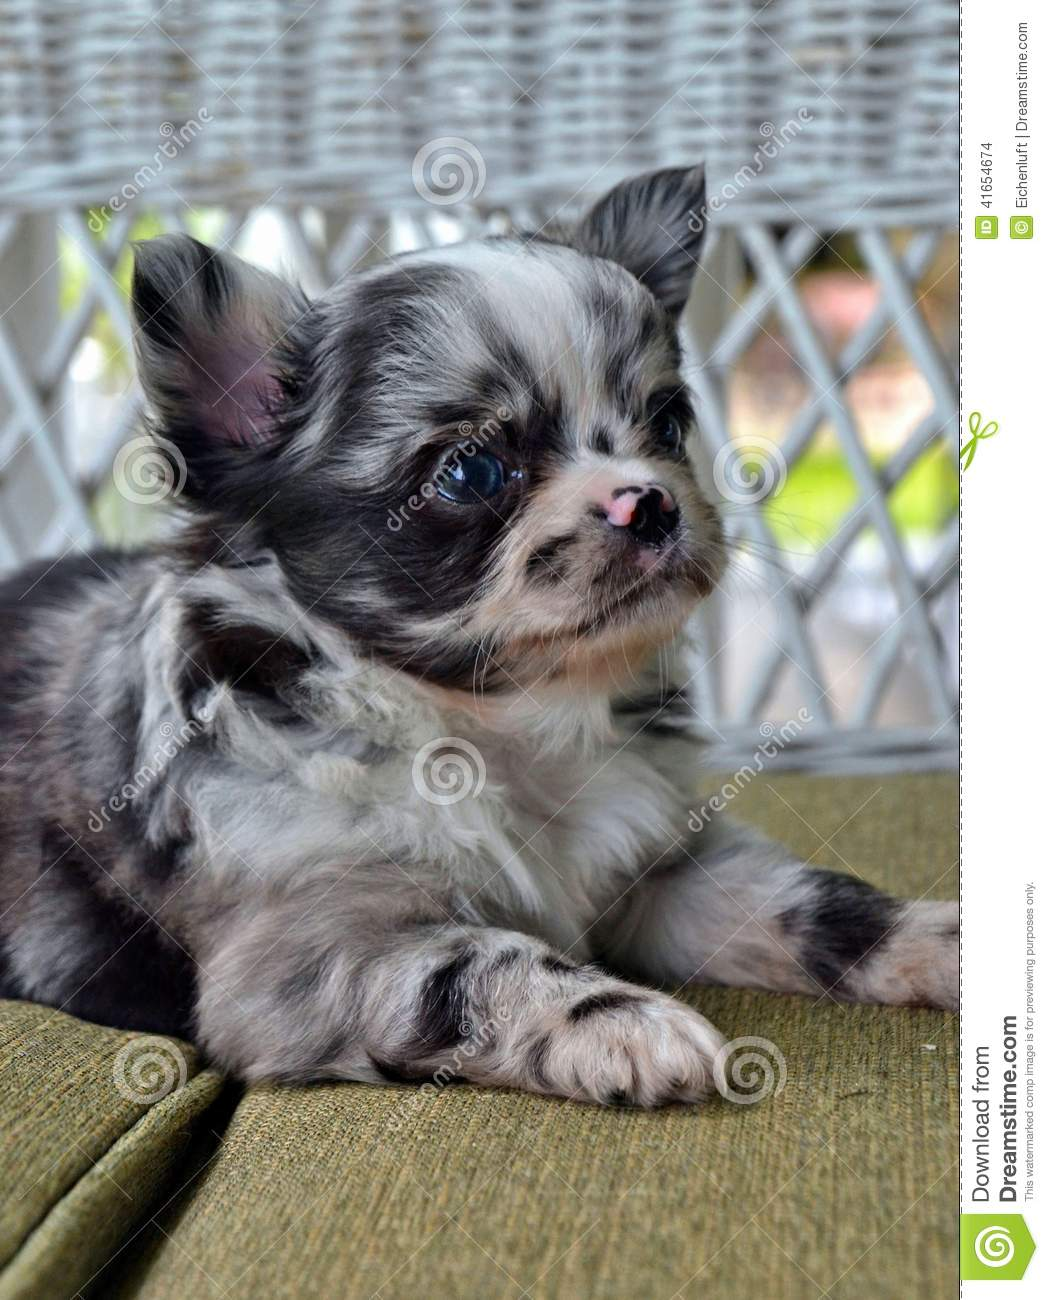 Chihuahuas 23 Stock Photo Image Of Fluffy Cute Laying 41654674